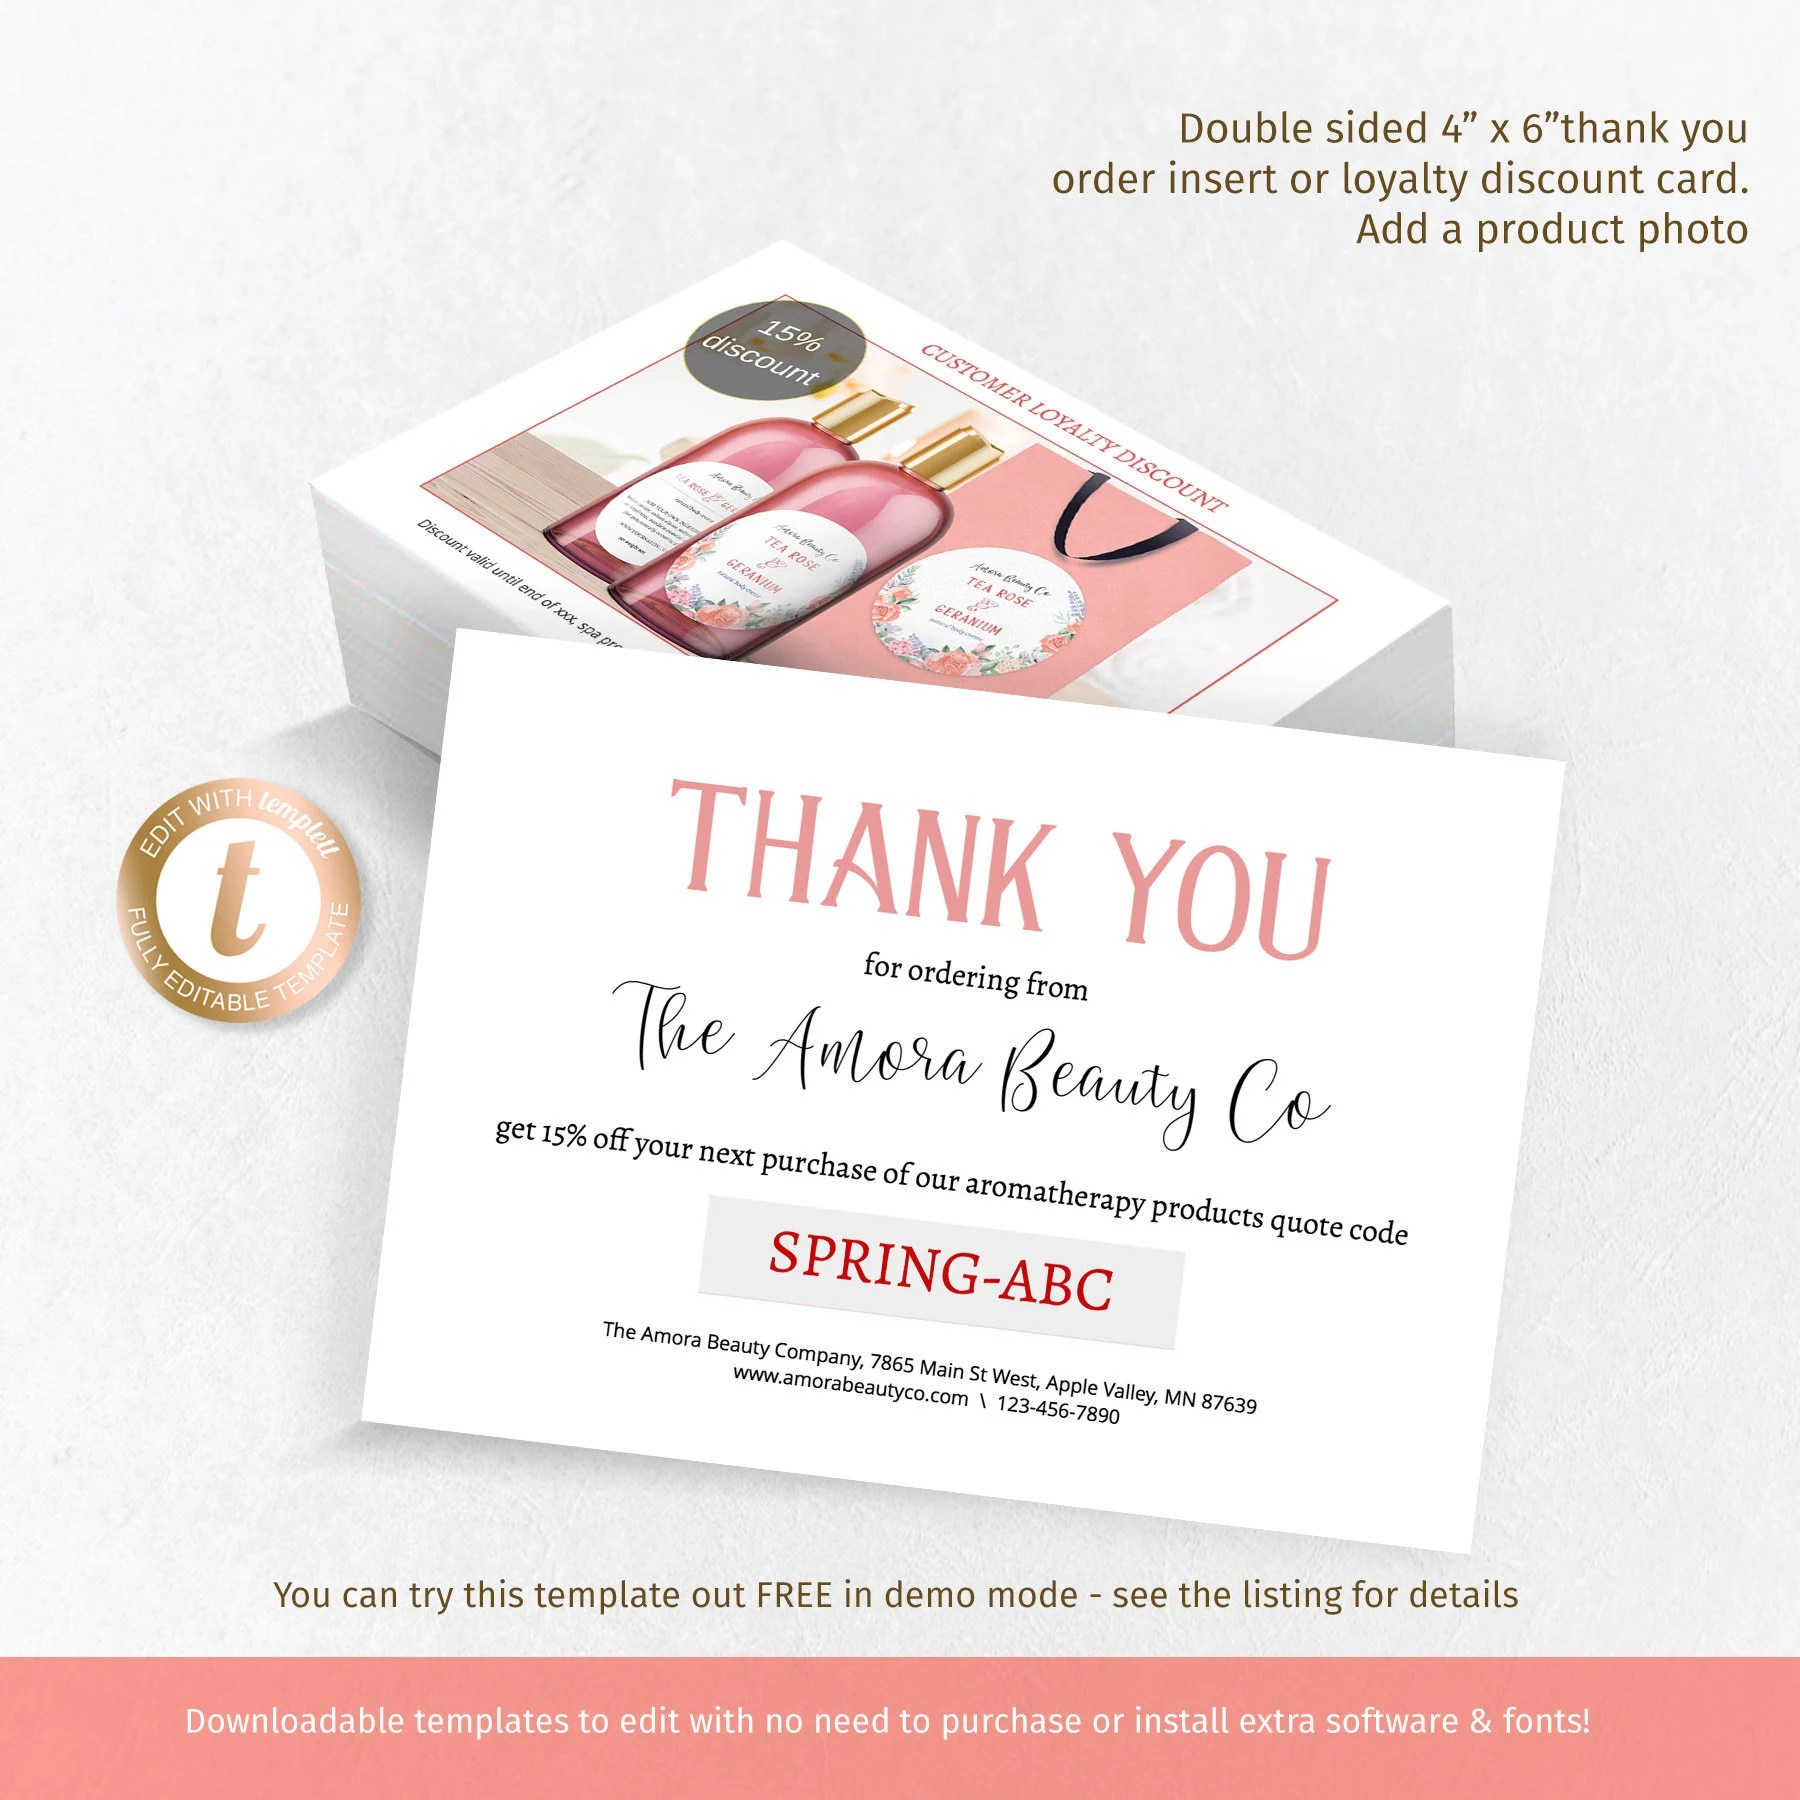 DIY customer thank you insert template add product photo Etsy